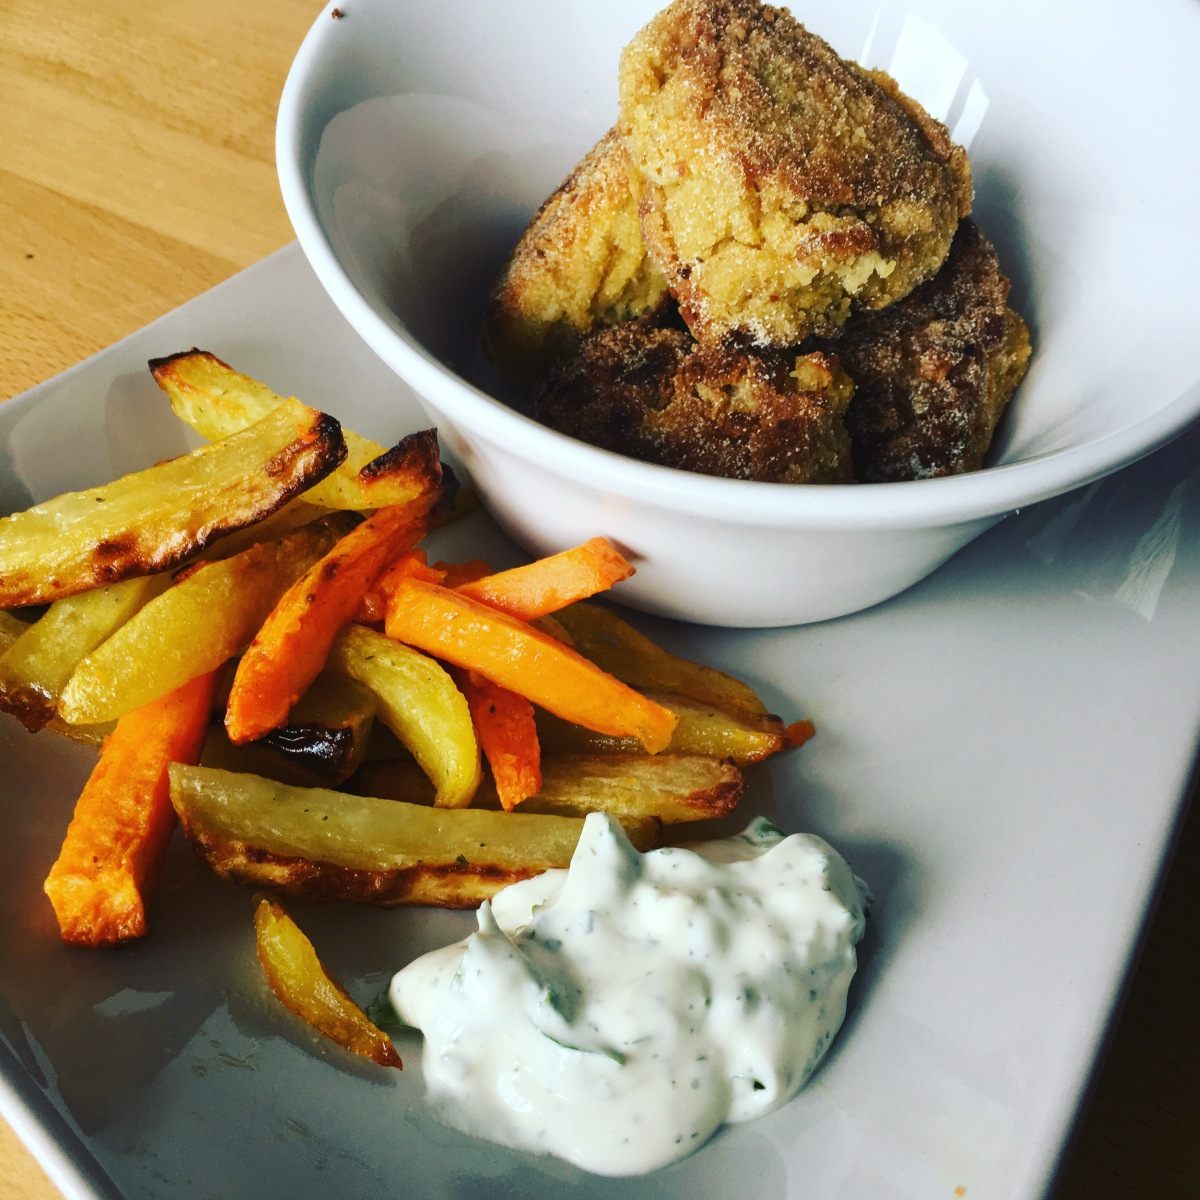 Menu healthy comme au Fast food : Nuggets de pois chiches et frites de patates douces et de pommes de terre sauce potatoes maison